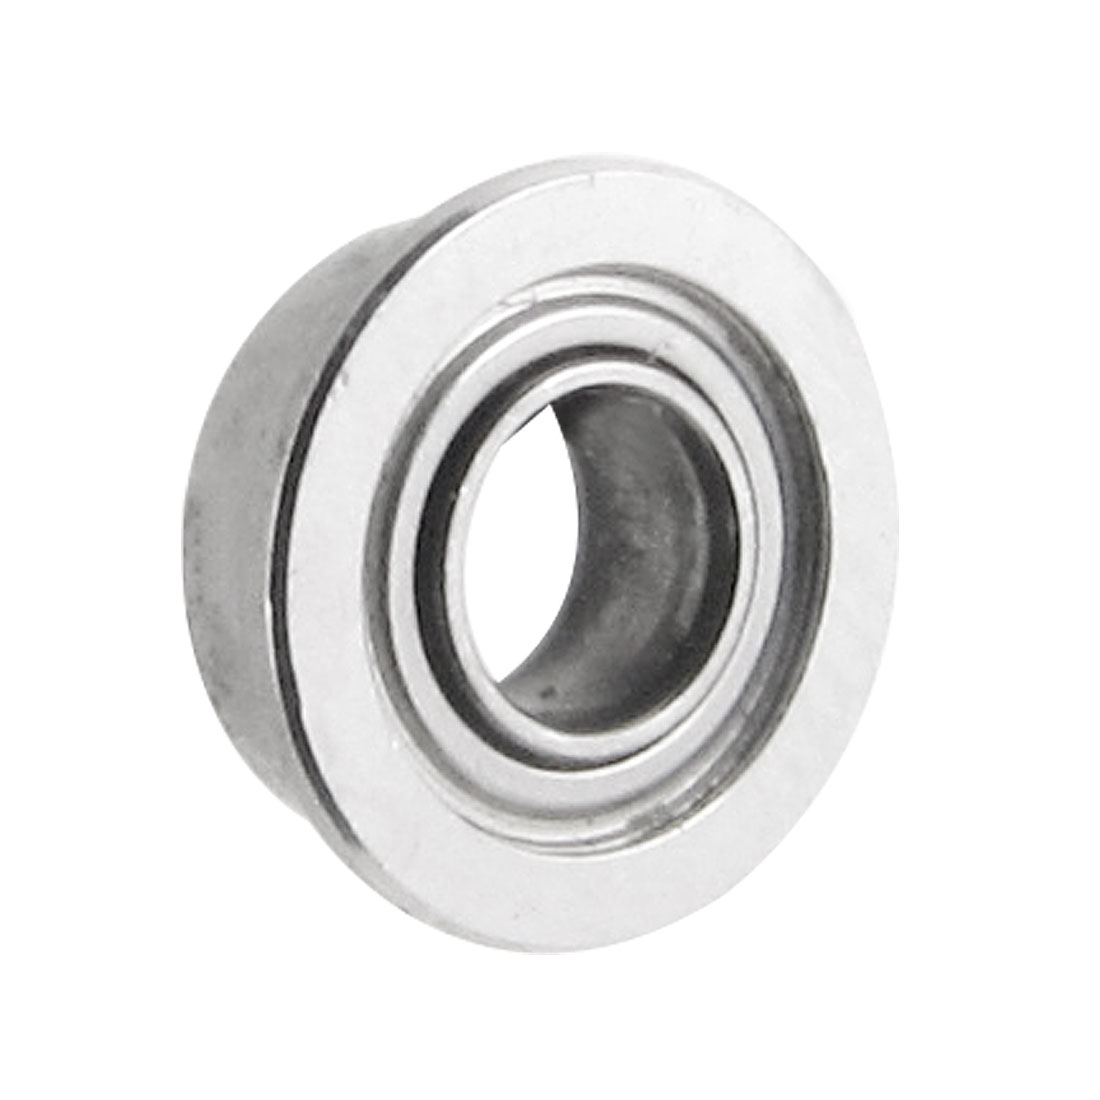 Flanged-3mm-x-6mm-x-2-5mm-Metal-Shielded-Deep-Groove-Ball-Bearing